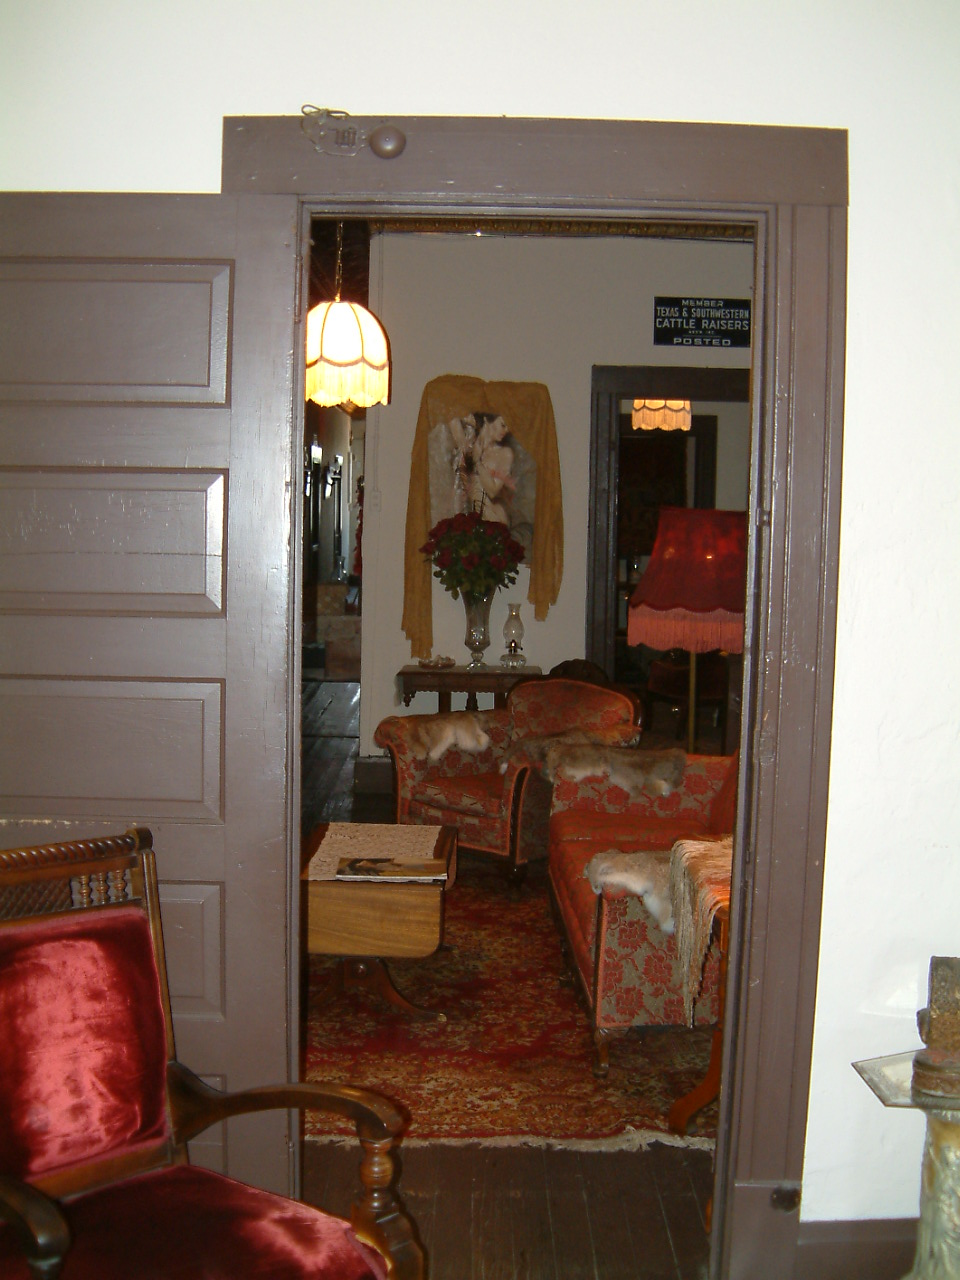 view into room